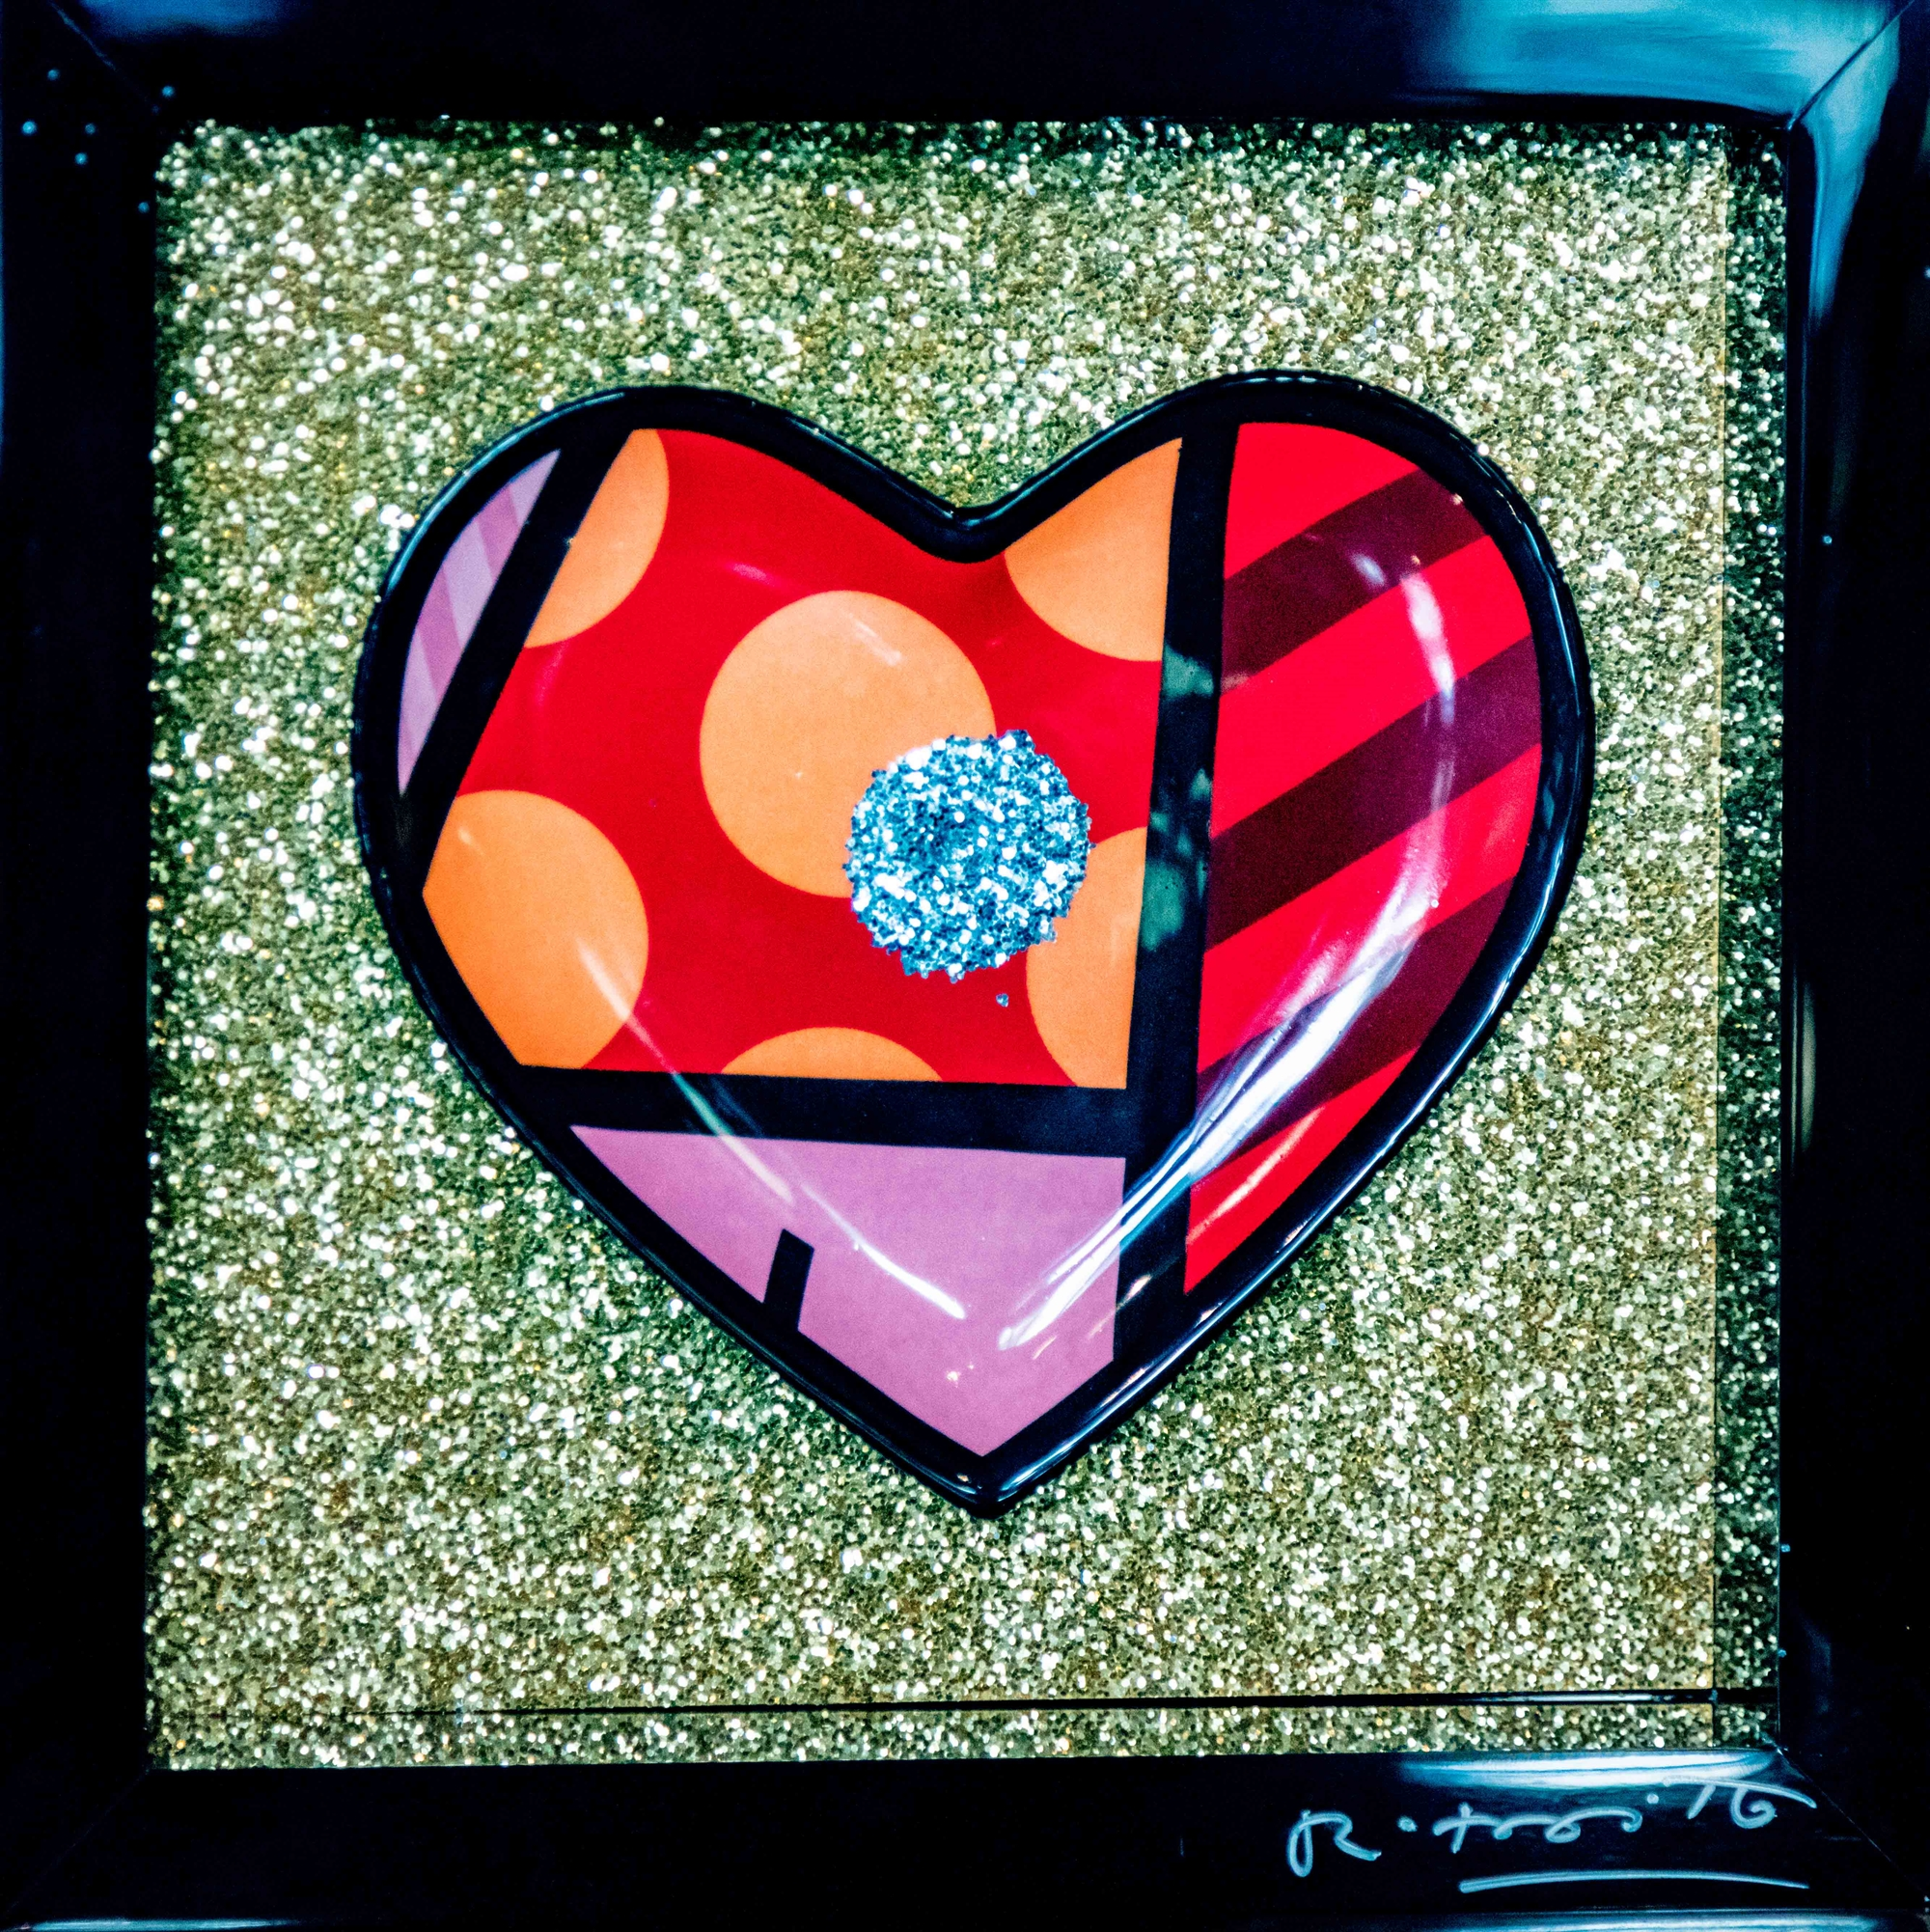 BIG HEART ! by Romero Britto